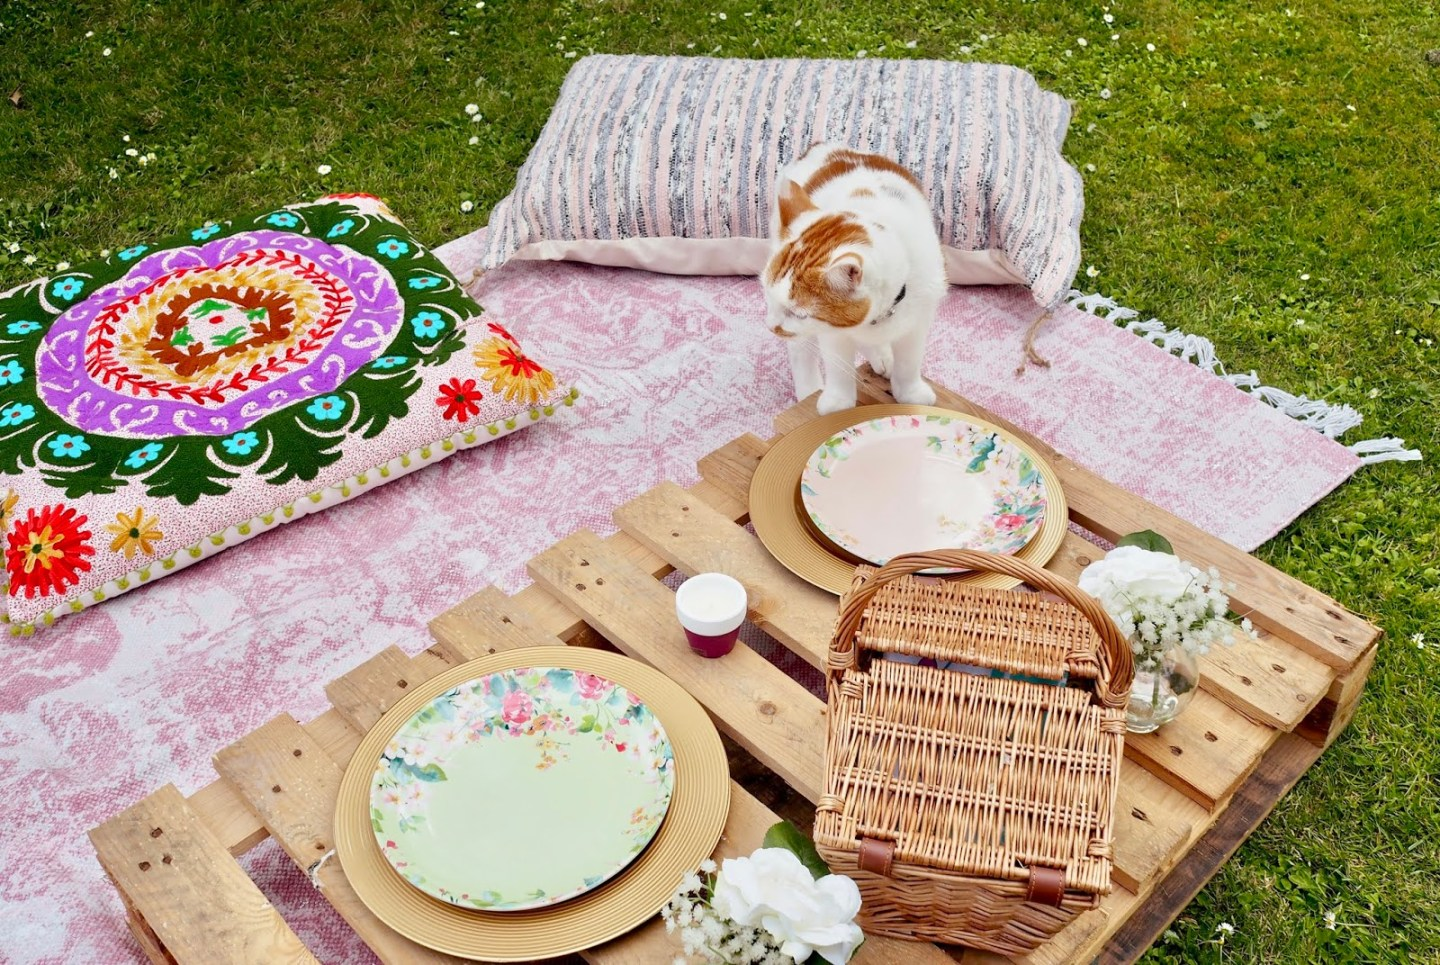 DIY Summer garden party idea